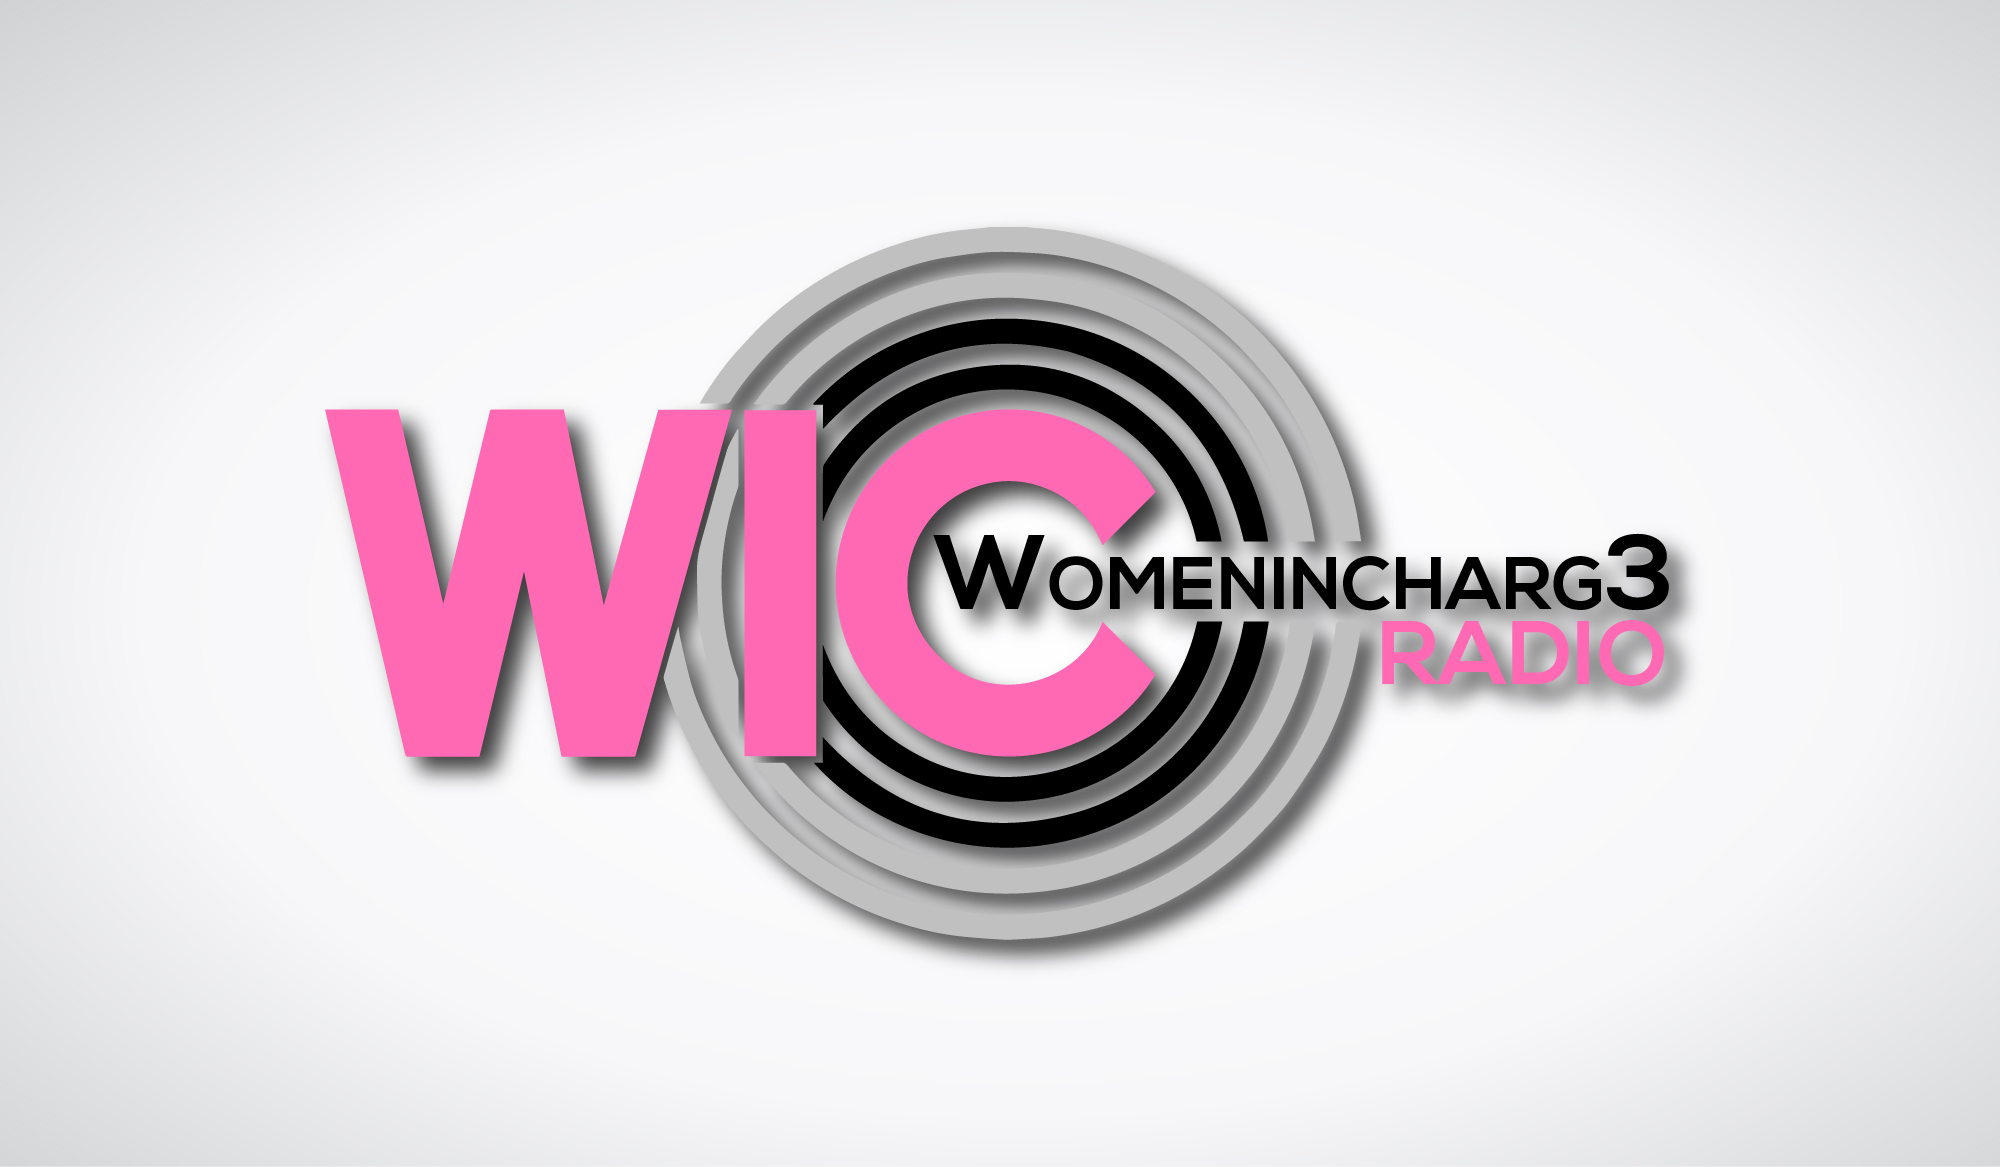 add you as a Sponsor on Womenincharg3 Radio for